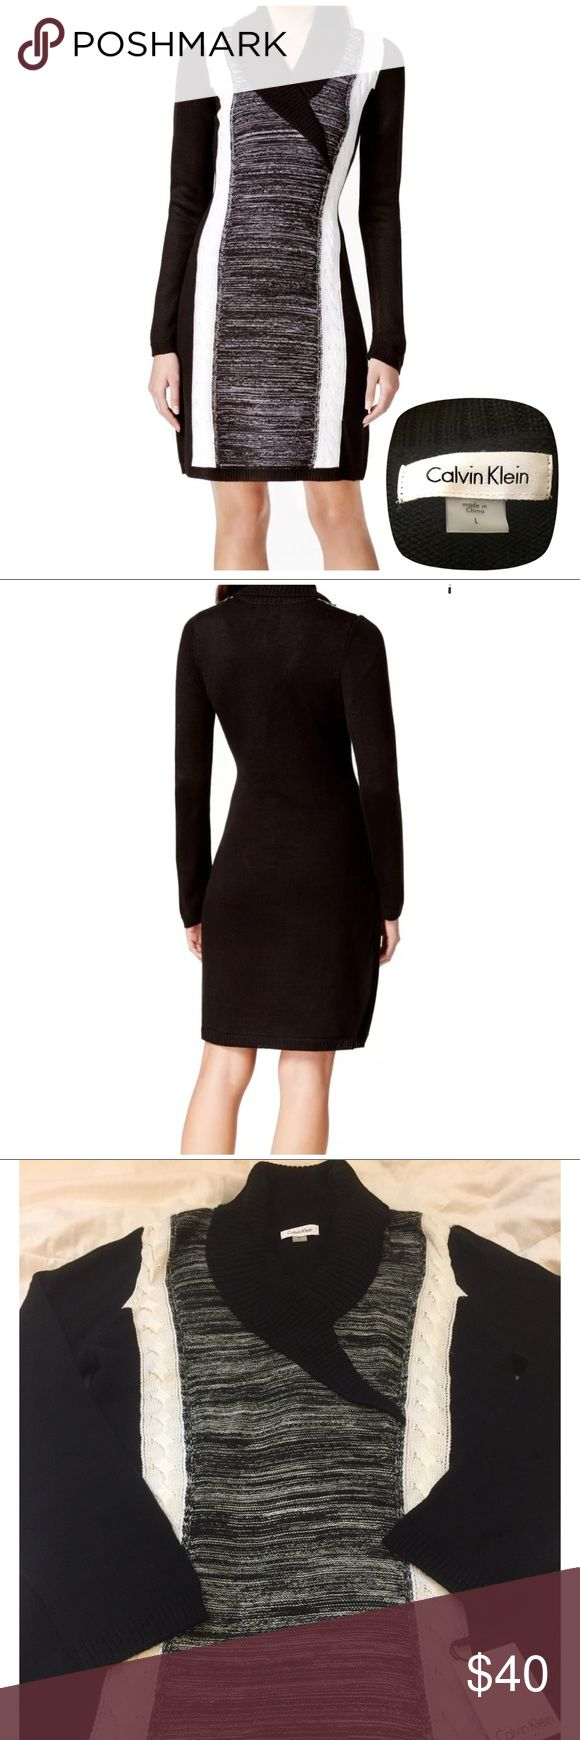 NWT Calvin Klein black & white knit sweater dress Brand: Calvin Klein   Size: Large Black & White Color Block Knit Sweater Dress 100% Acrylic  Great winter dress paired with boots for office/ work or a night out. Perfect as a gift for someone. Questions? Please ask prior to purchasing. Calvin Klein Dresses